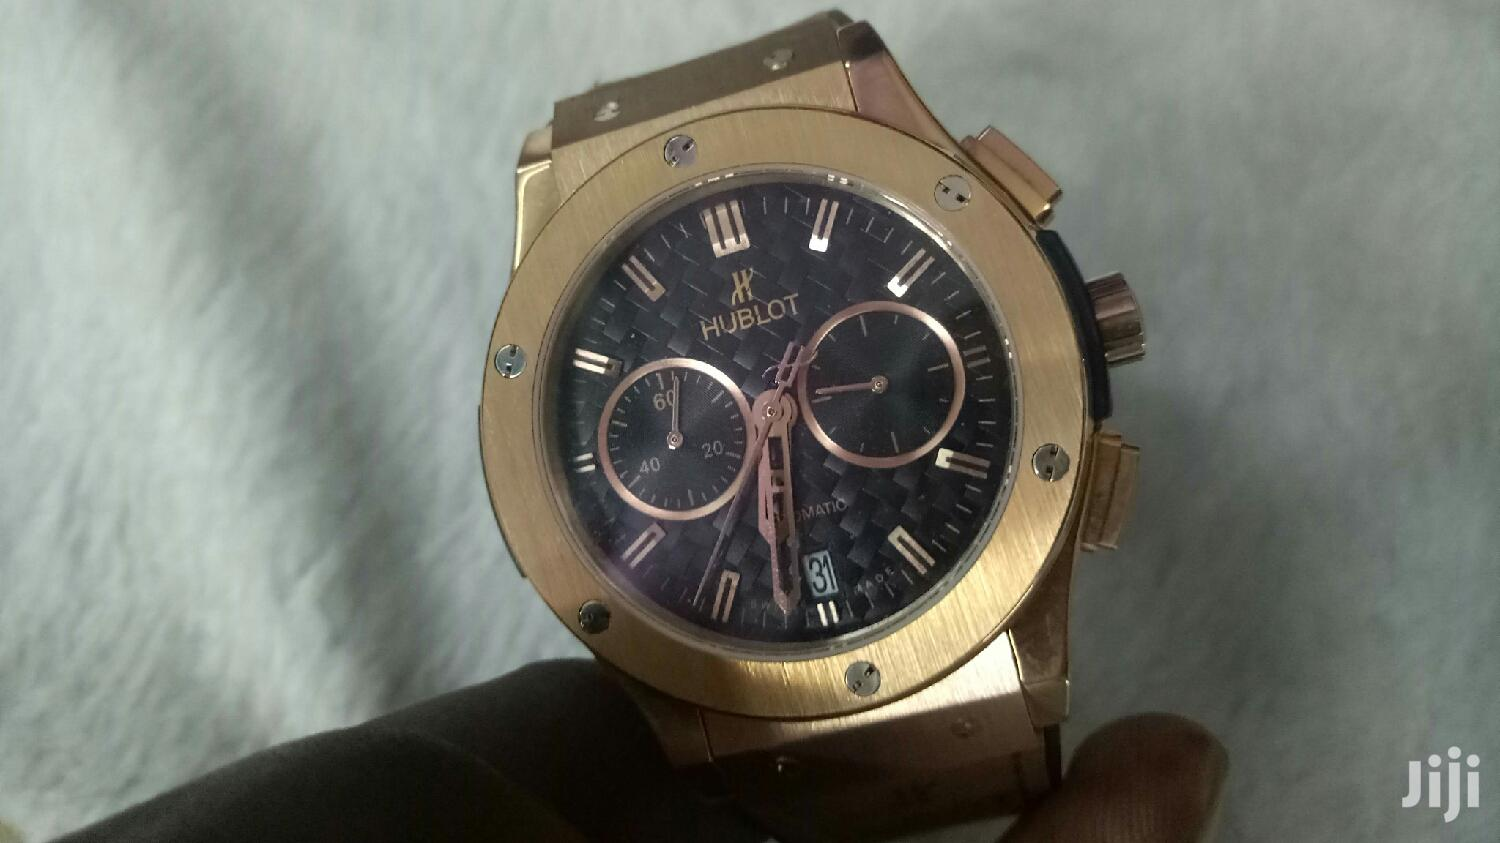 Hublot Gents Watch Quality Timepiece